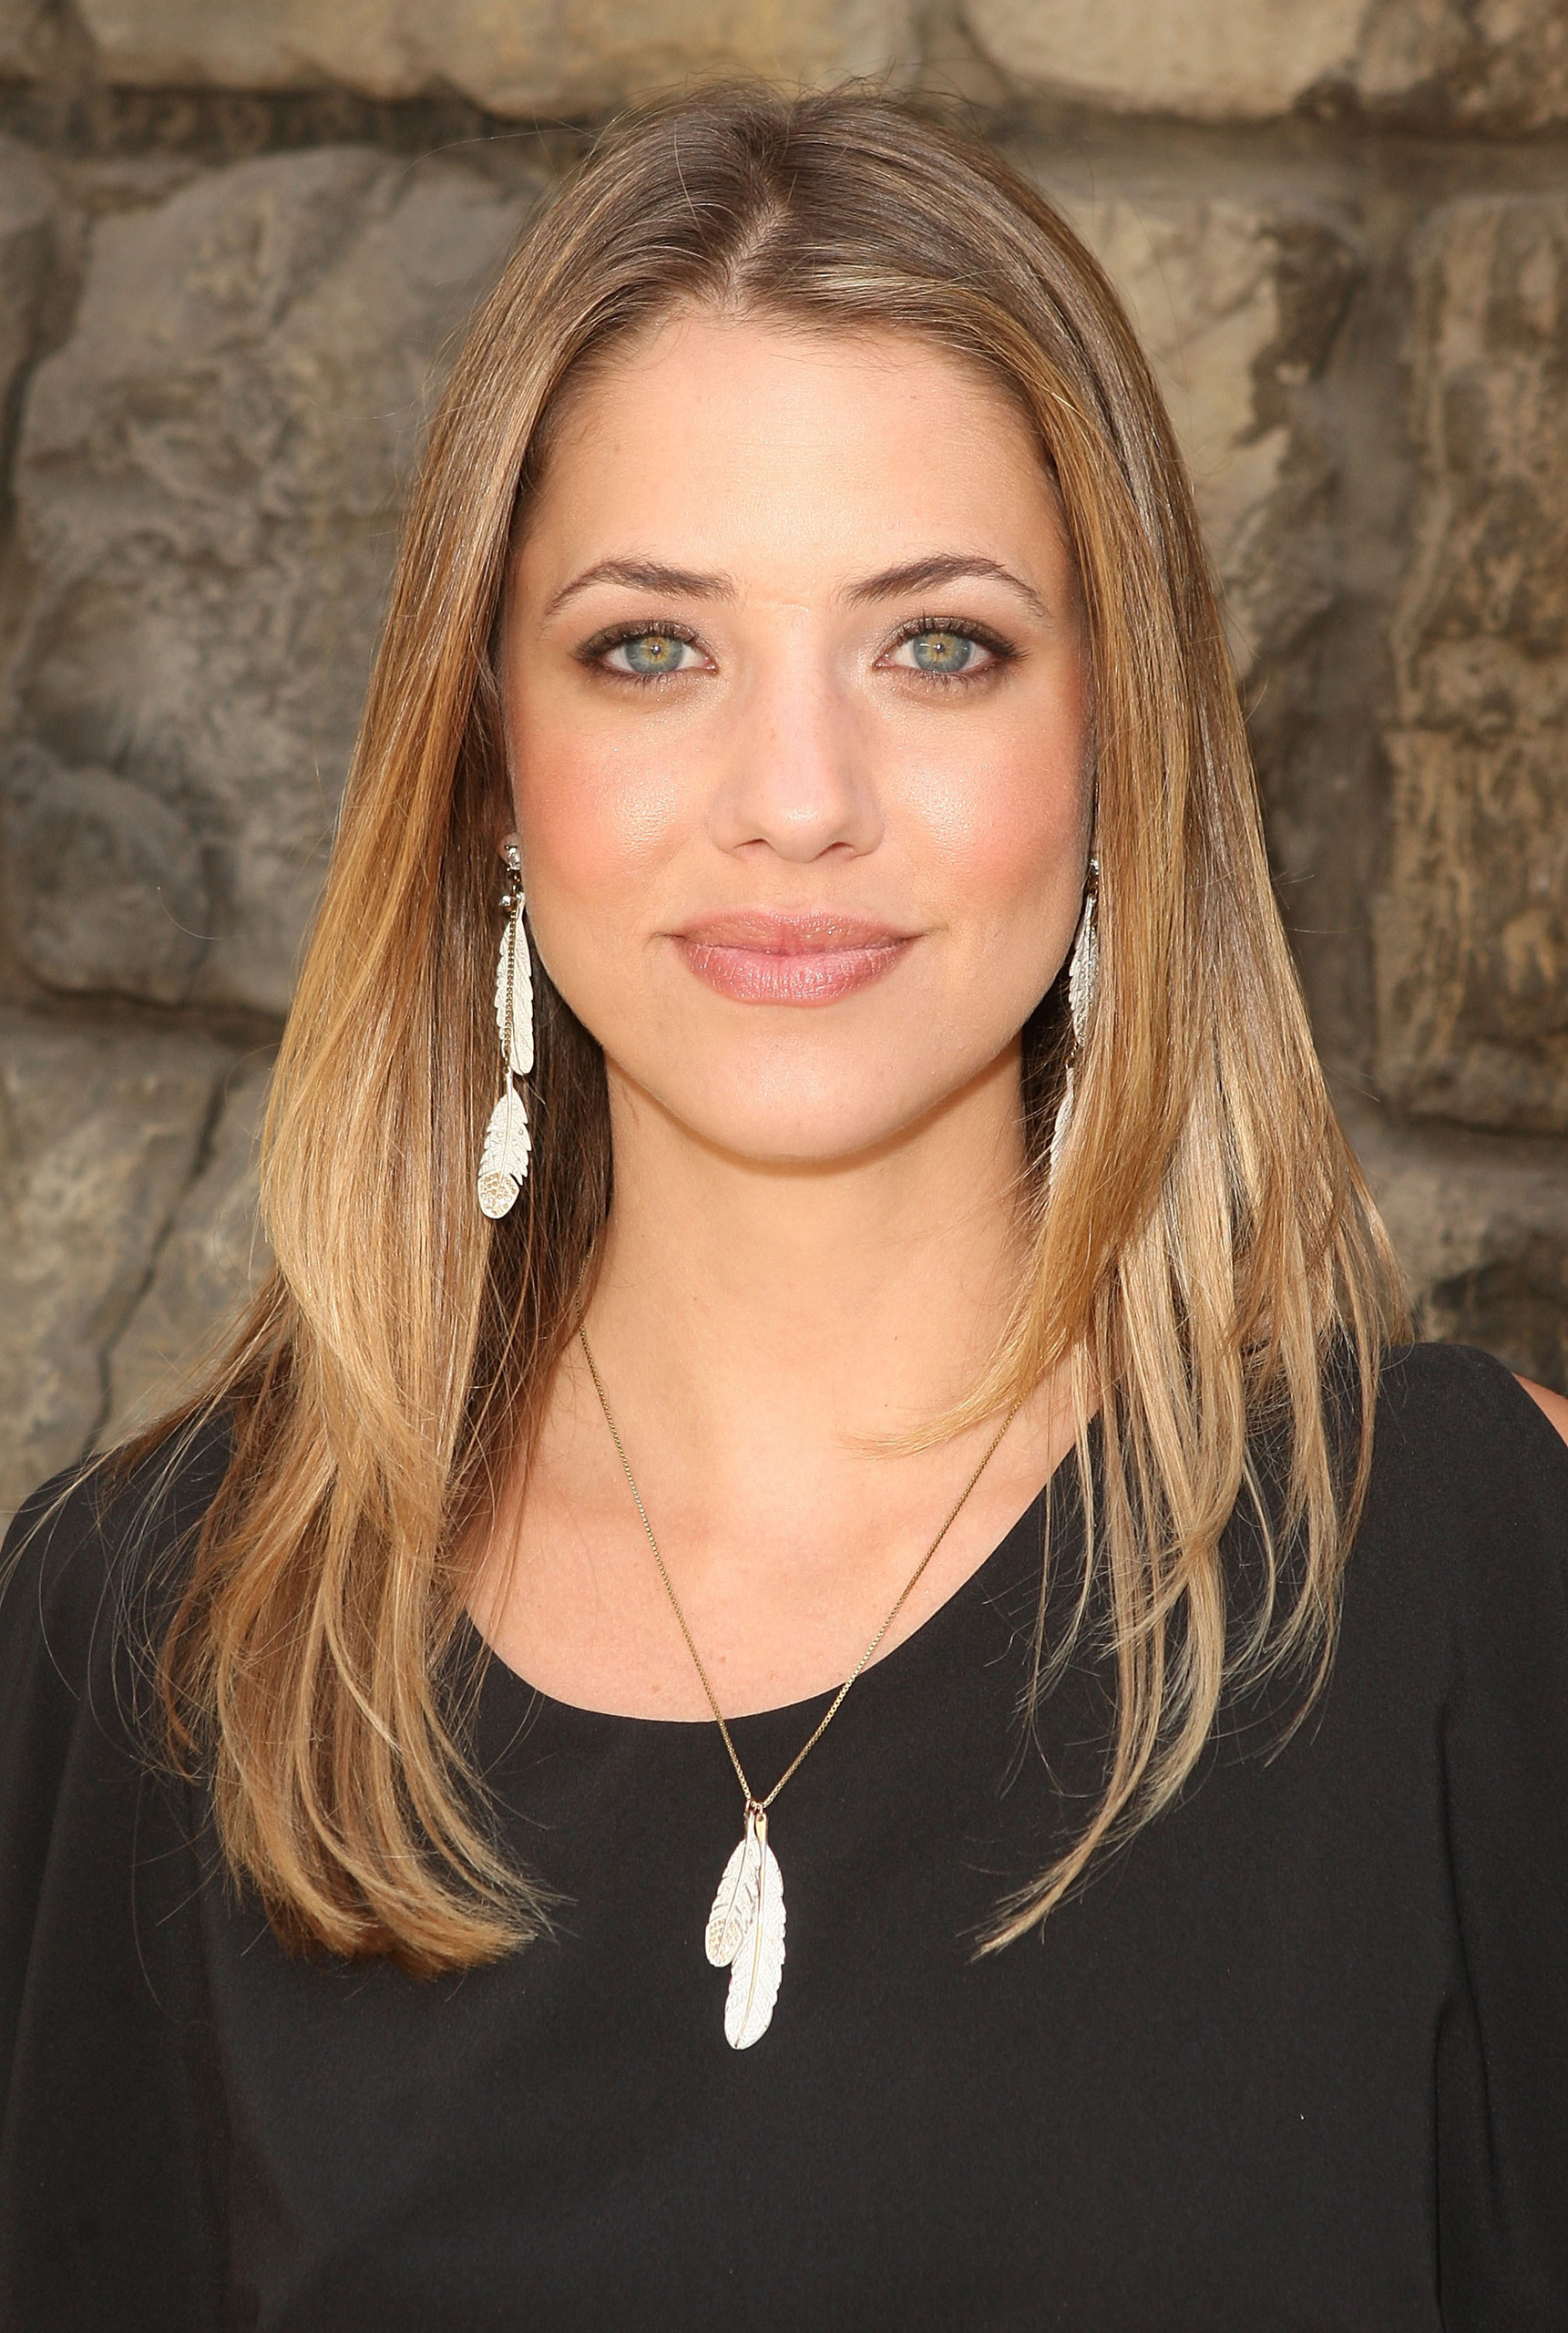 The 35-year old daughter of father (?) and mother(?), 173 cm tall Julie Gonzalo in 2017 photo